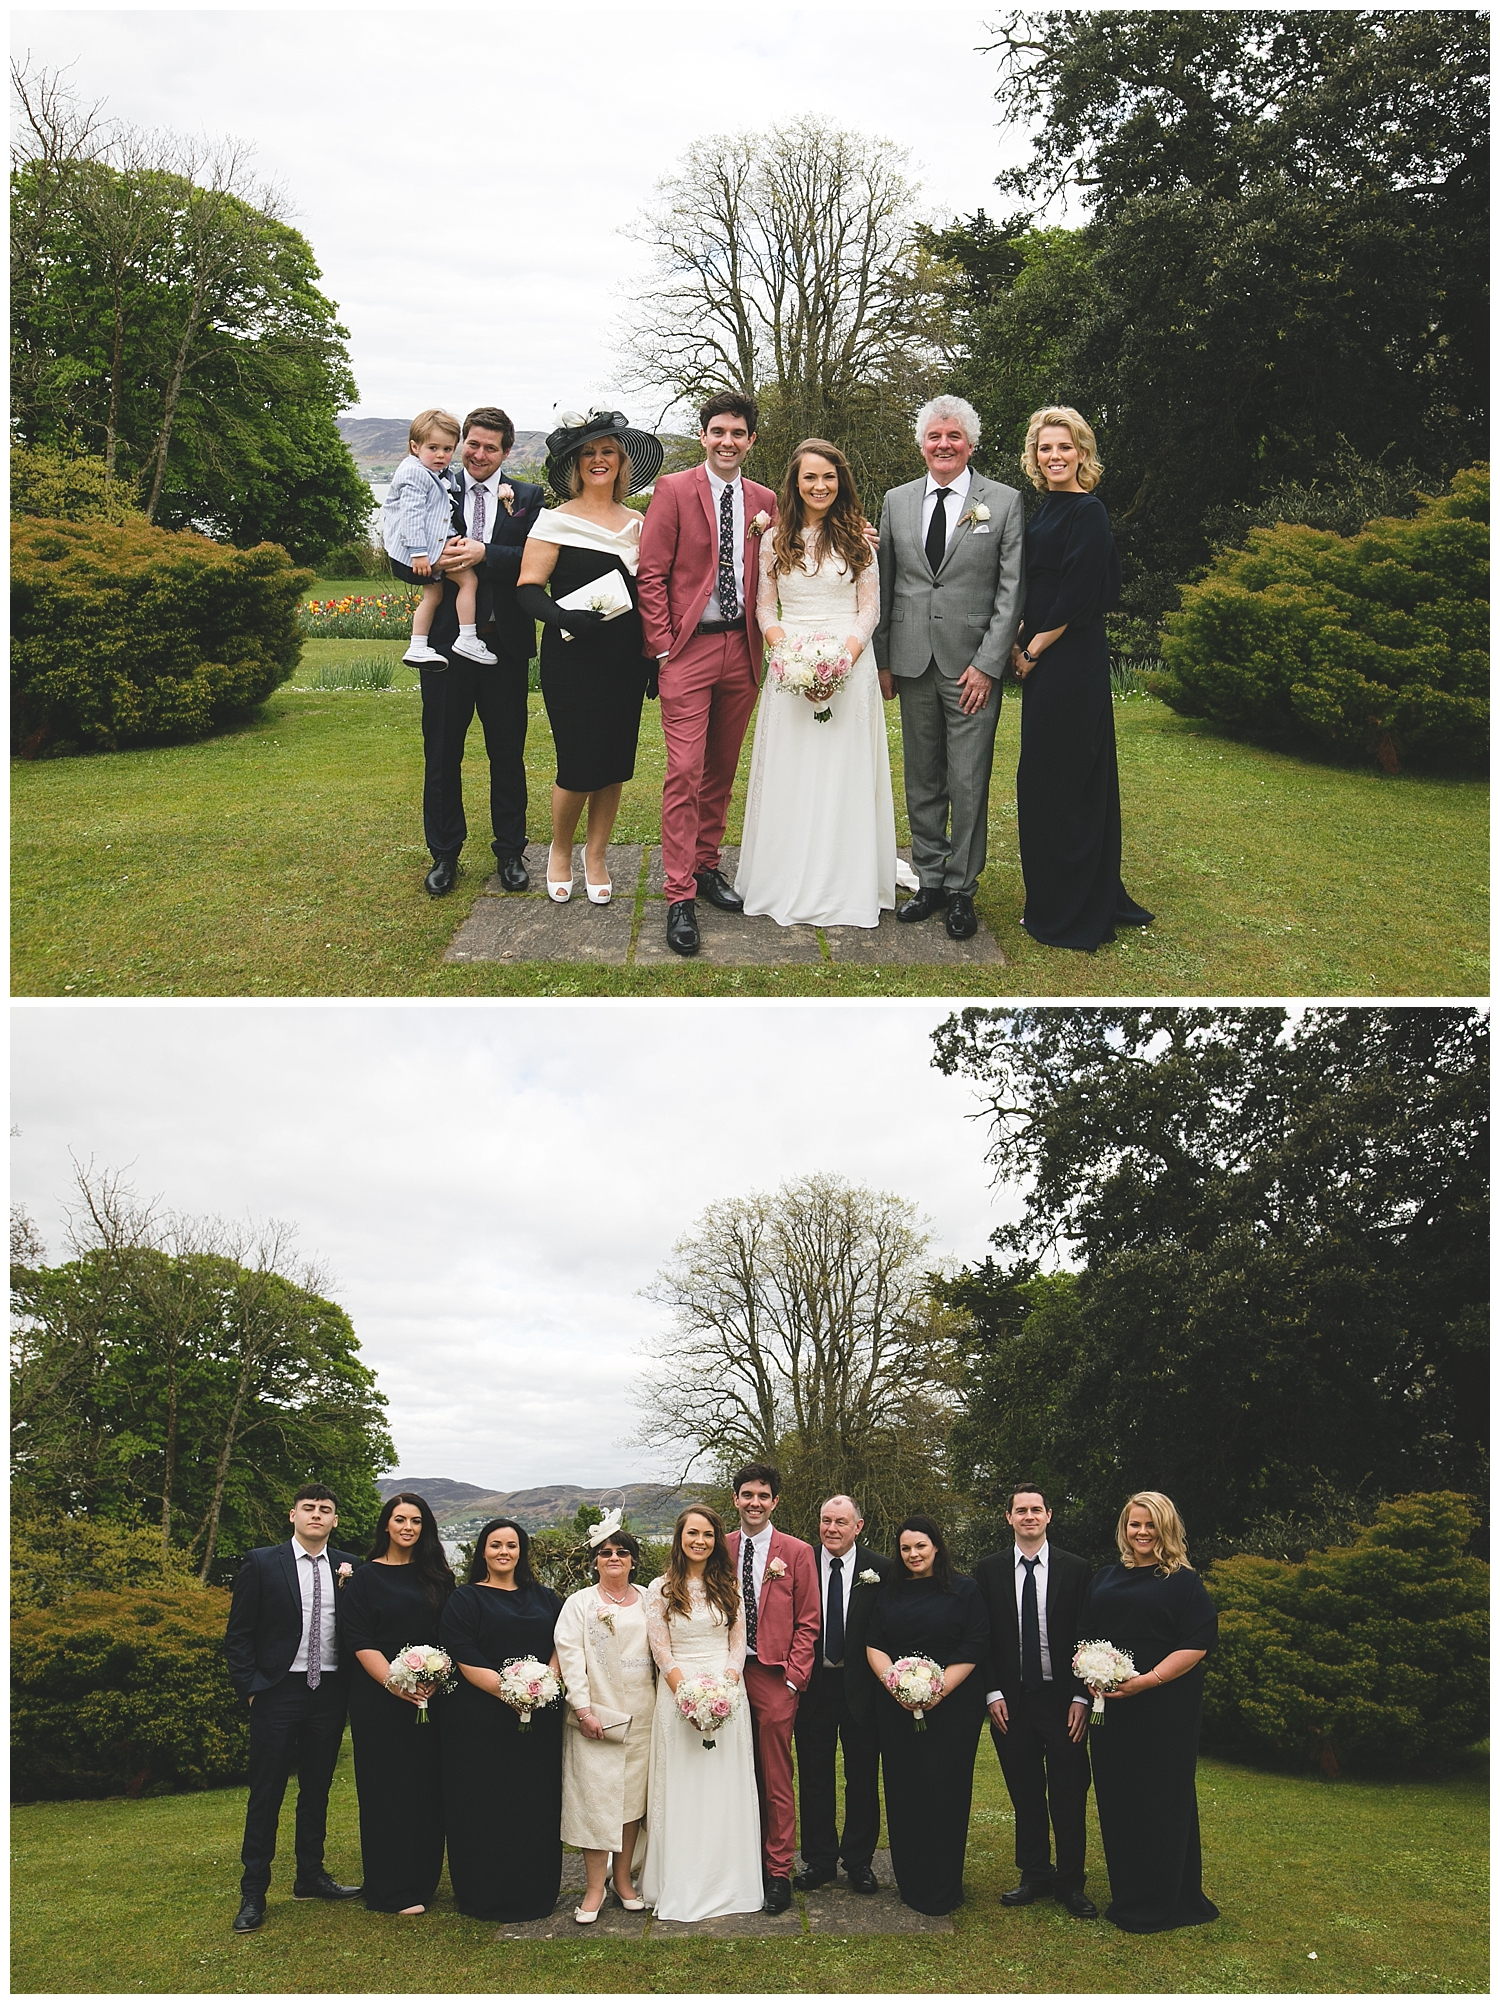 Formal yet informal style wedding family photographs